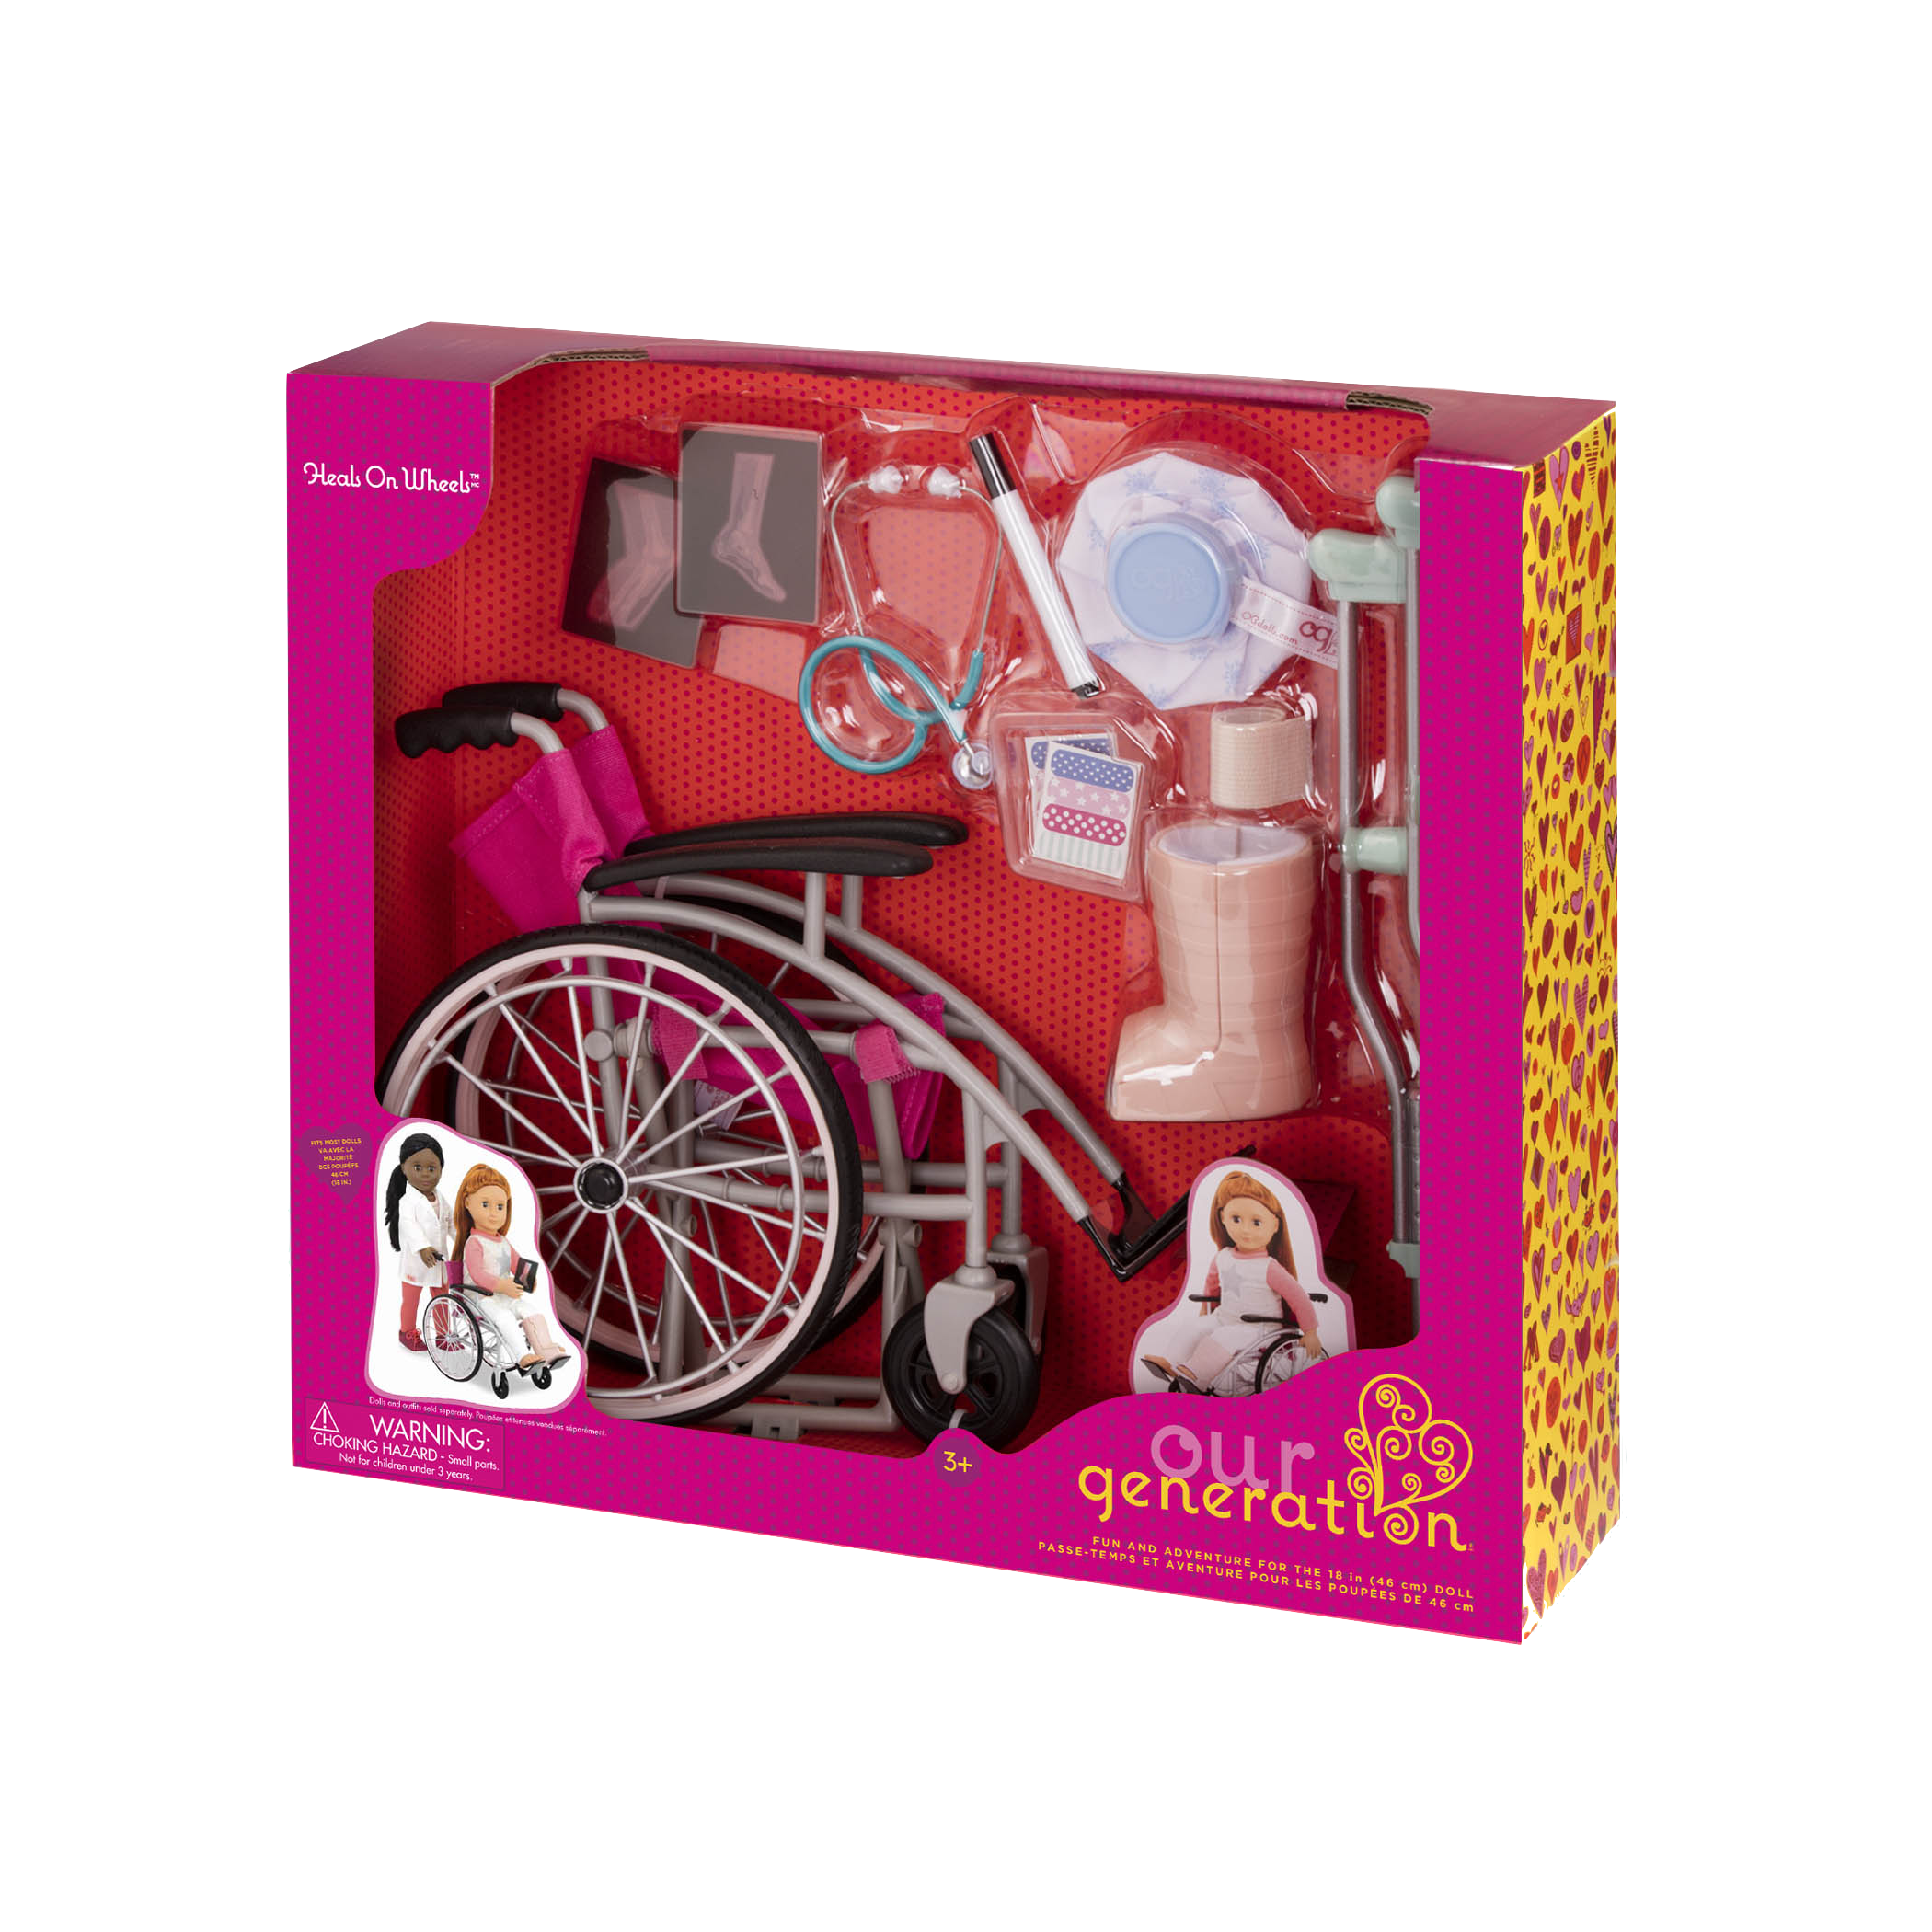 Heals on Wheels medical Accessories package